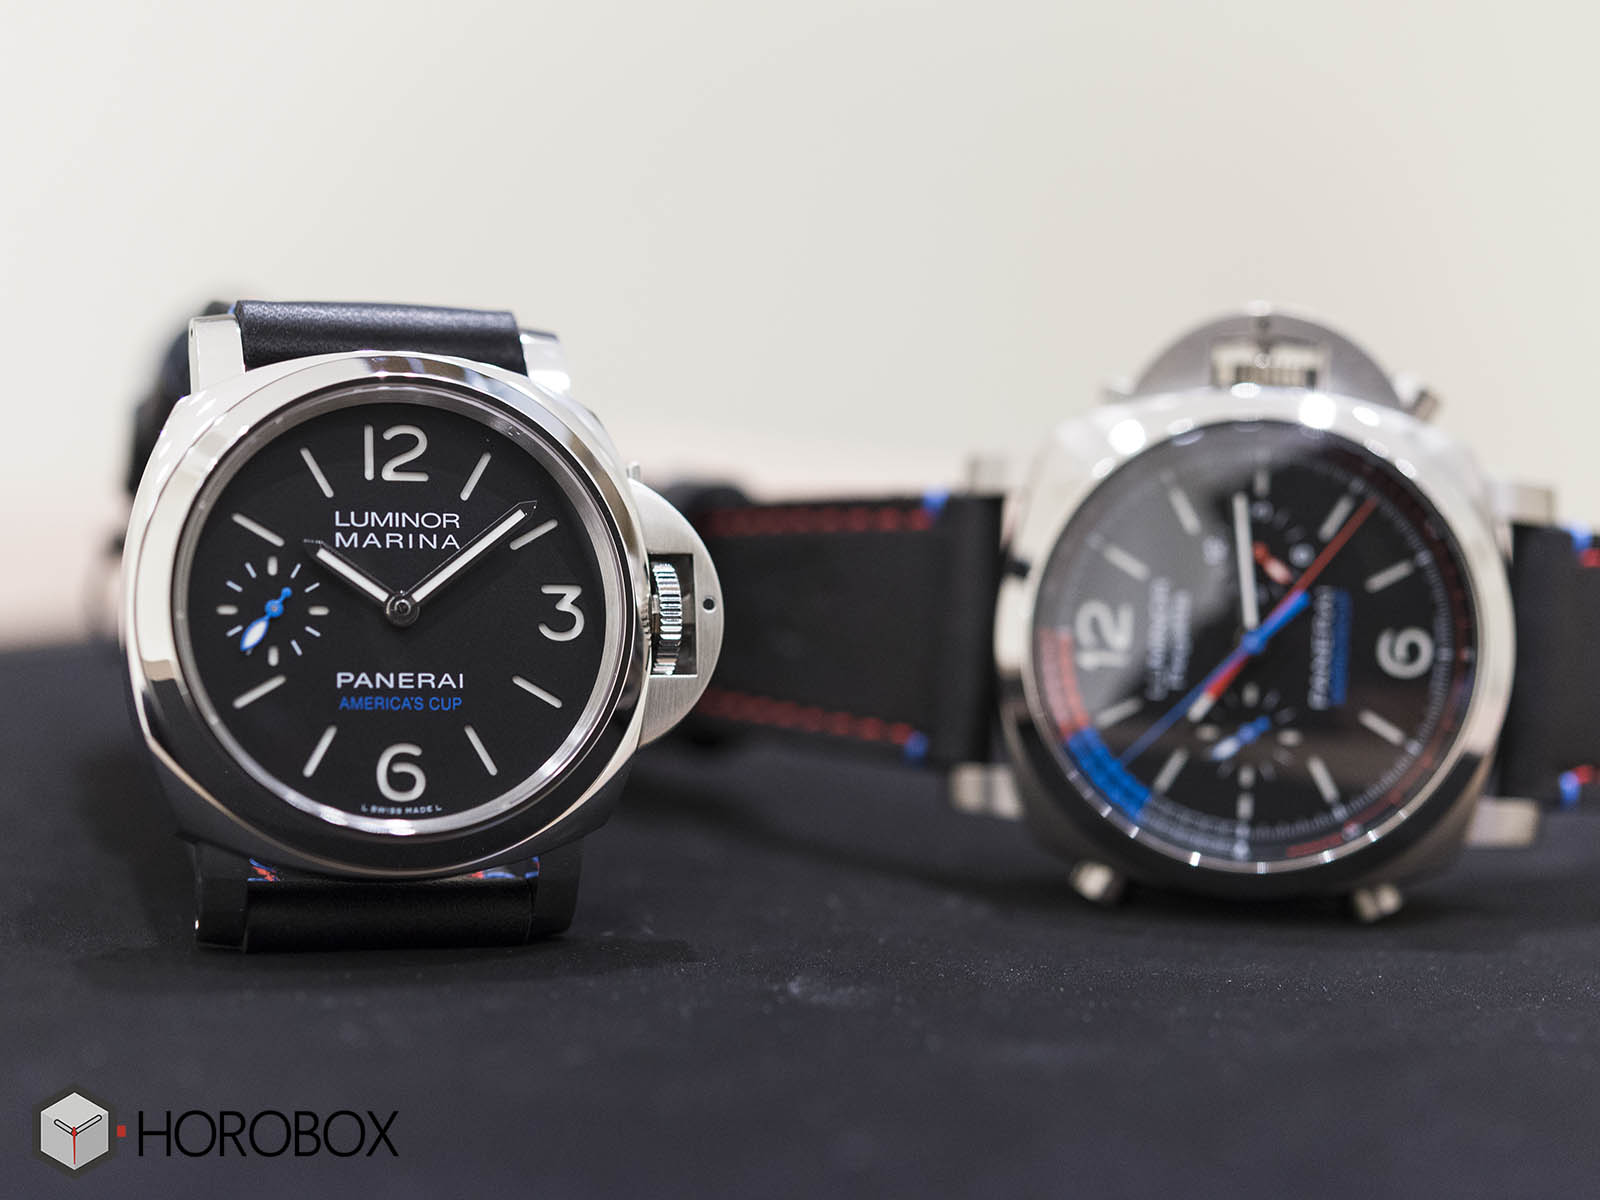 officine-panerai-luminor-marina-pam00724-pam00726-2.jpg